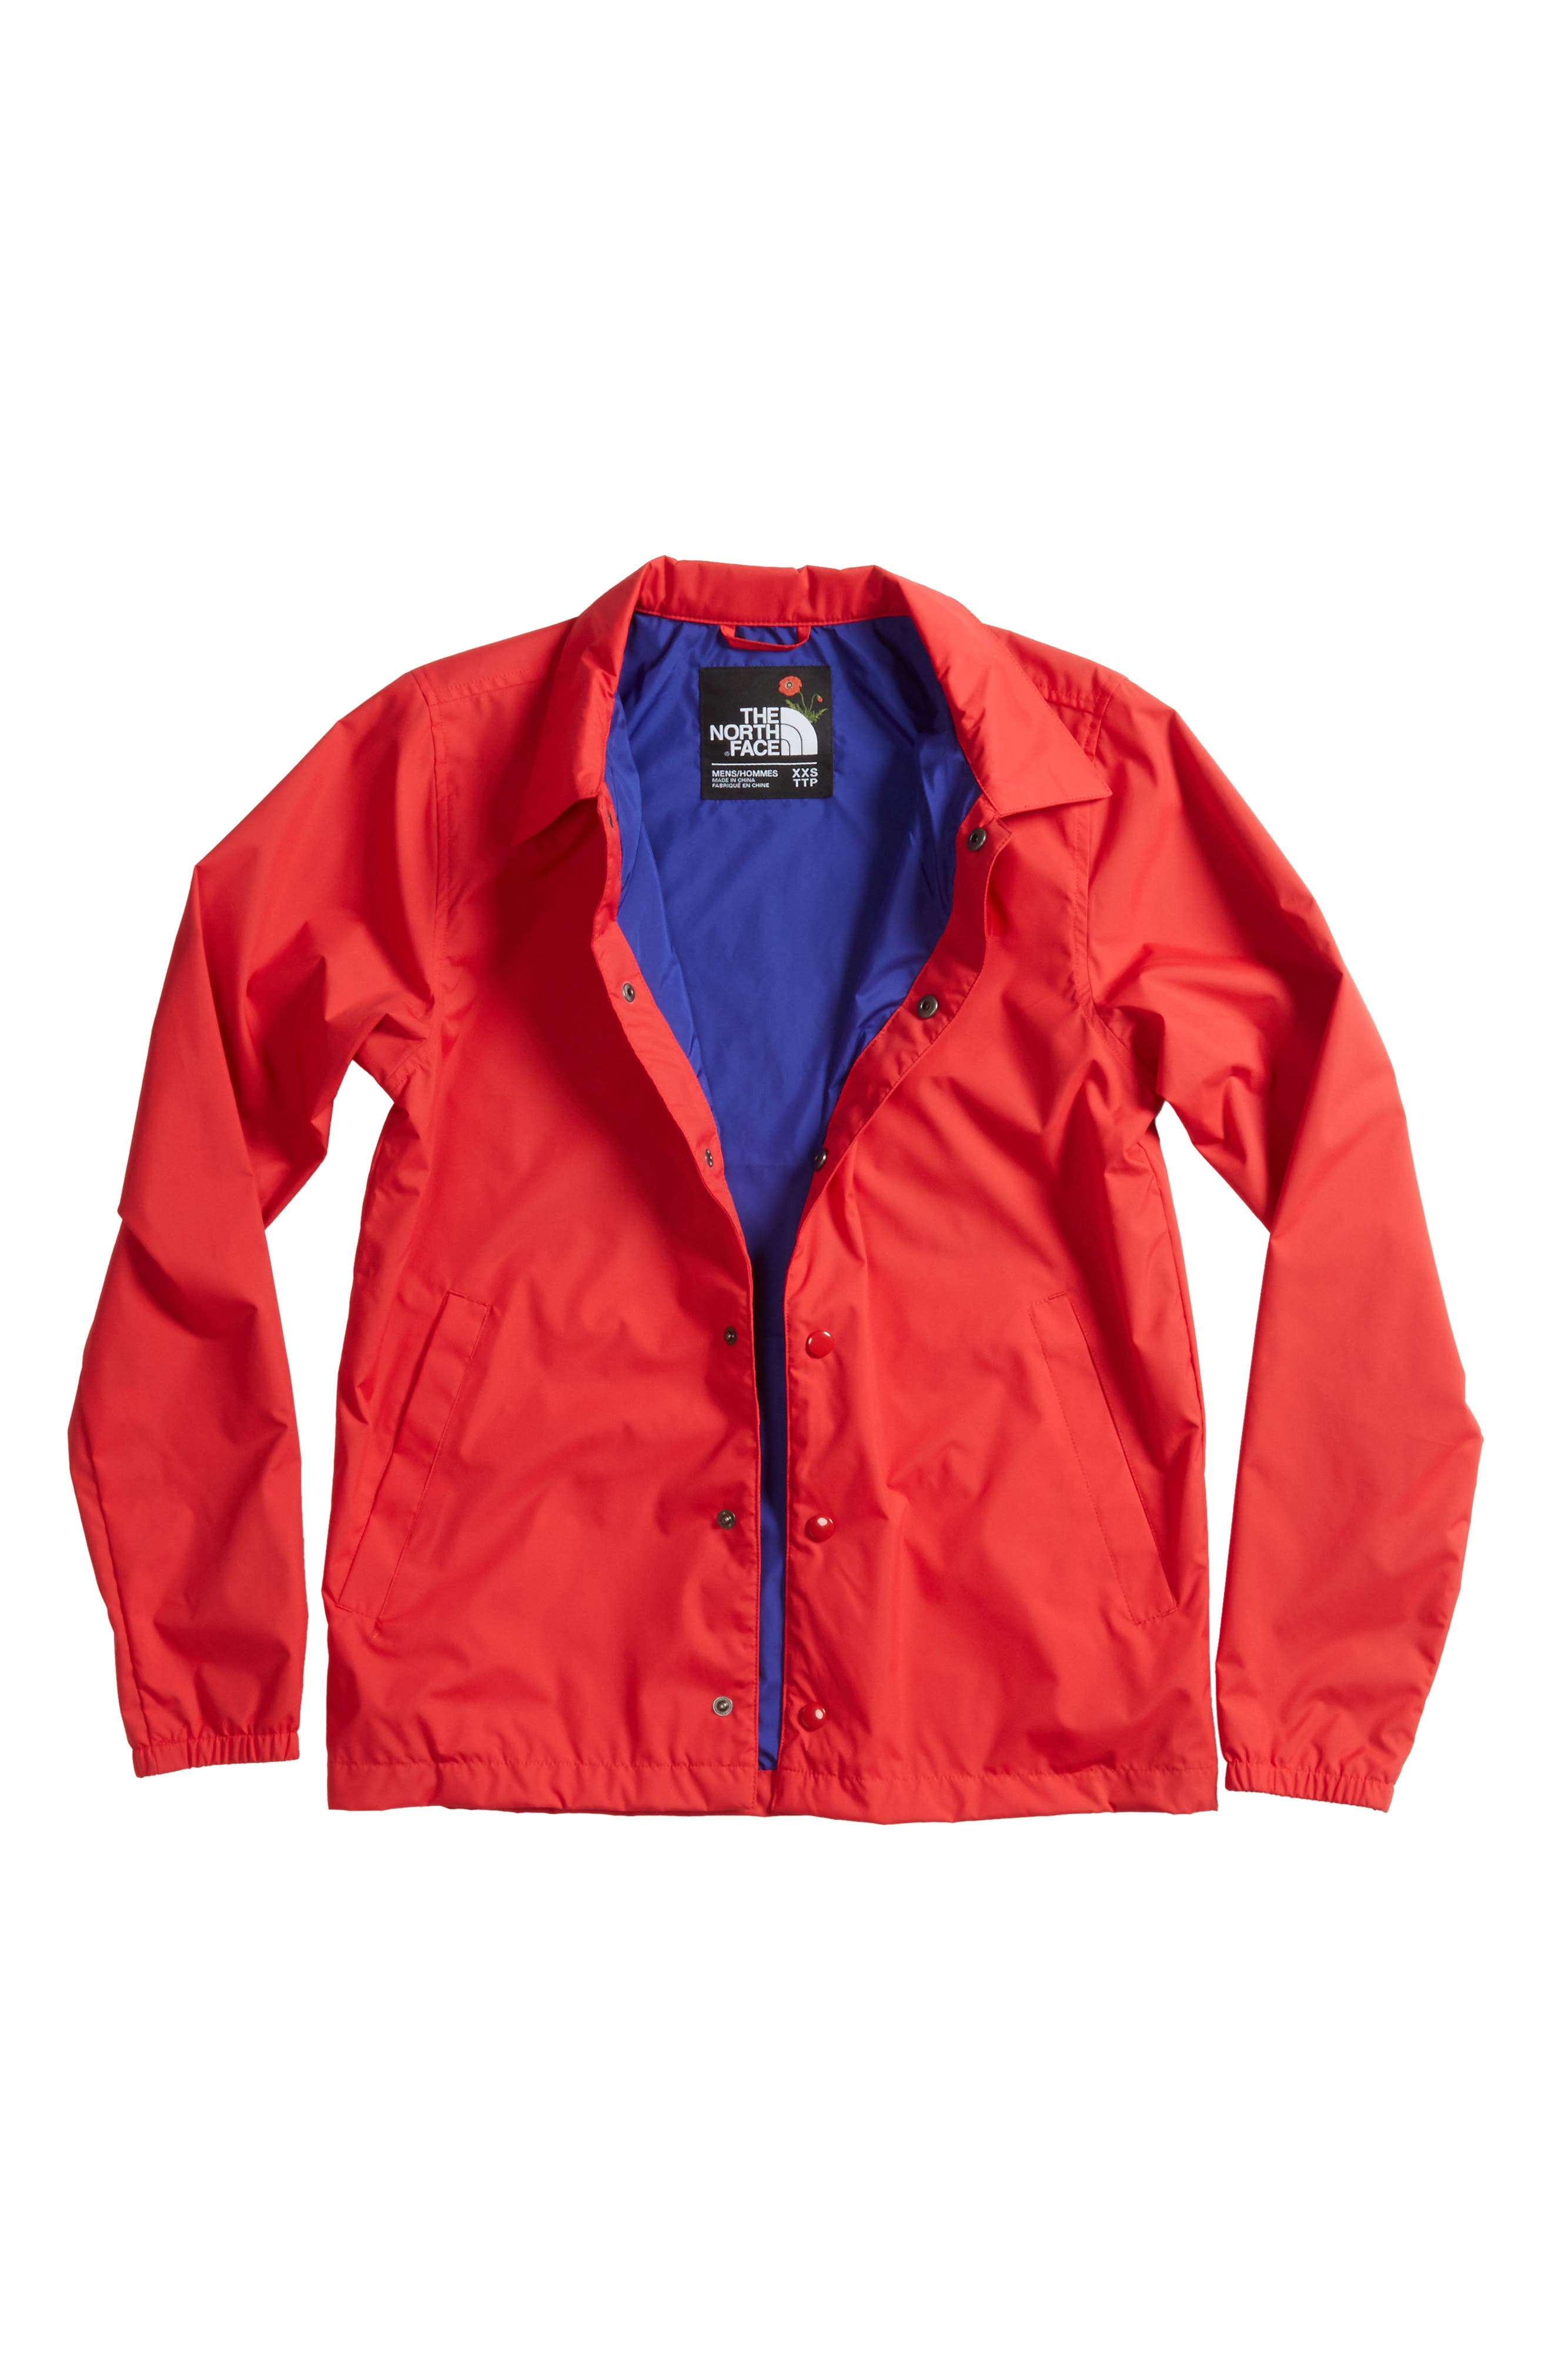 Coaches Jacket,                         Main,                         color, Tnf Red